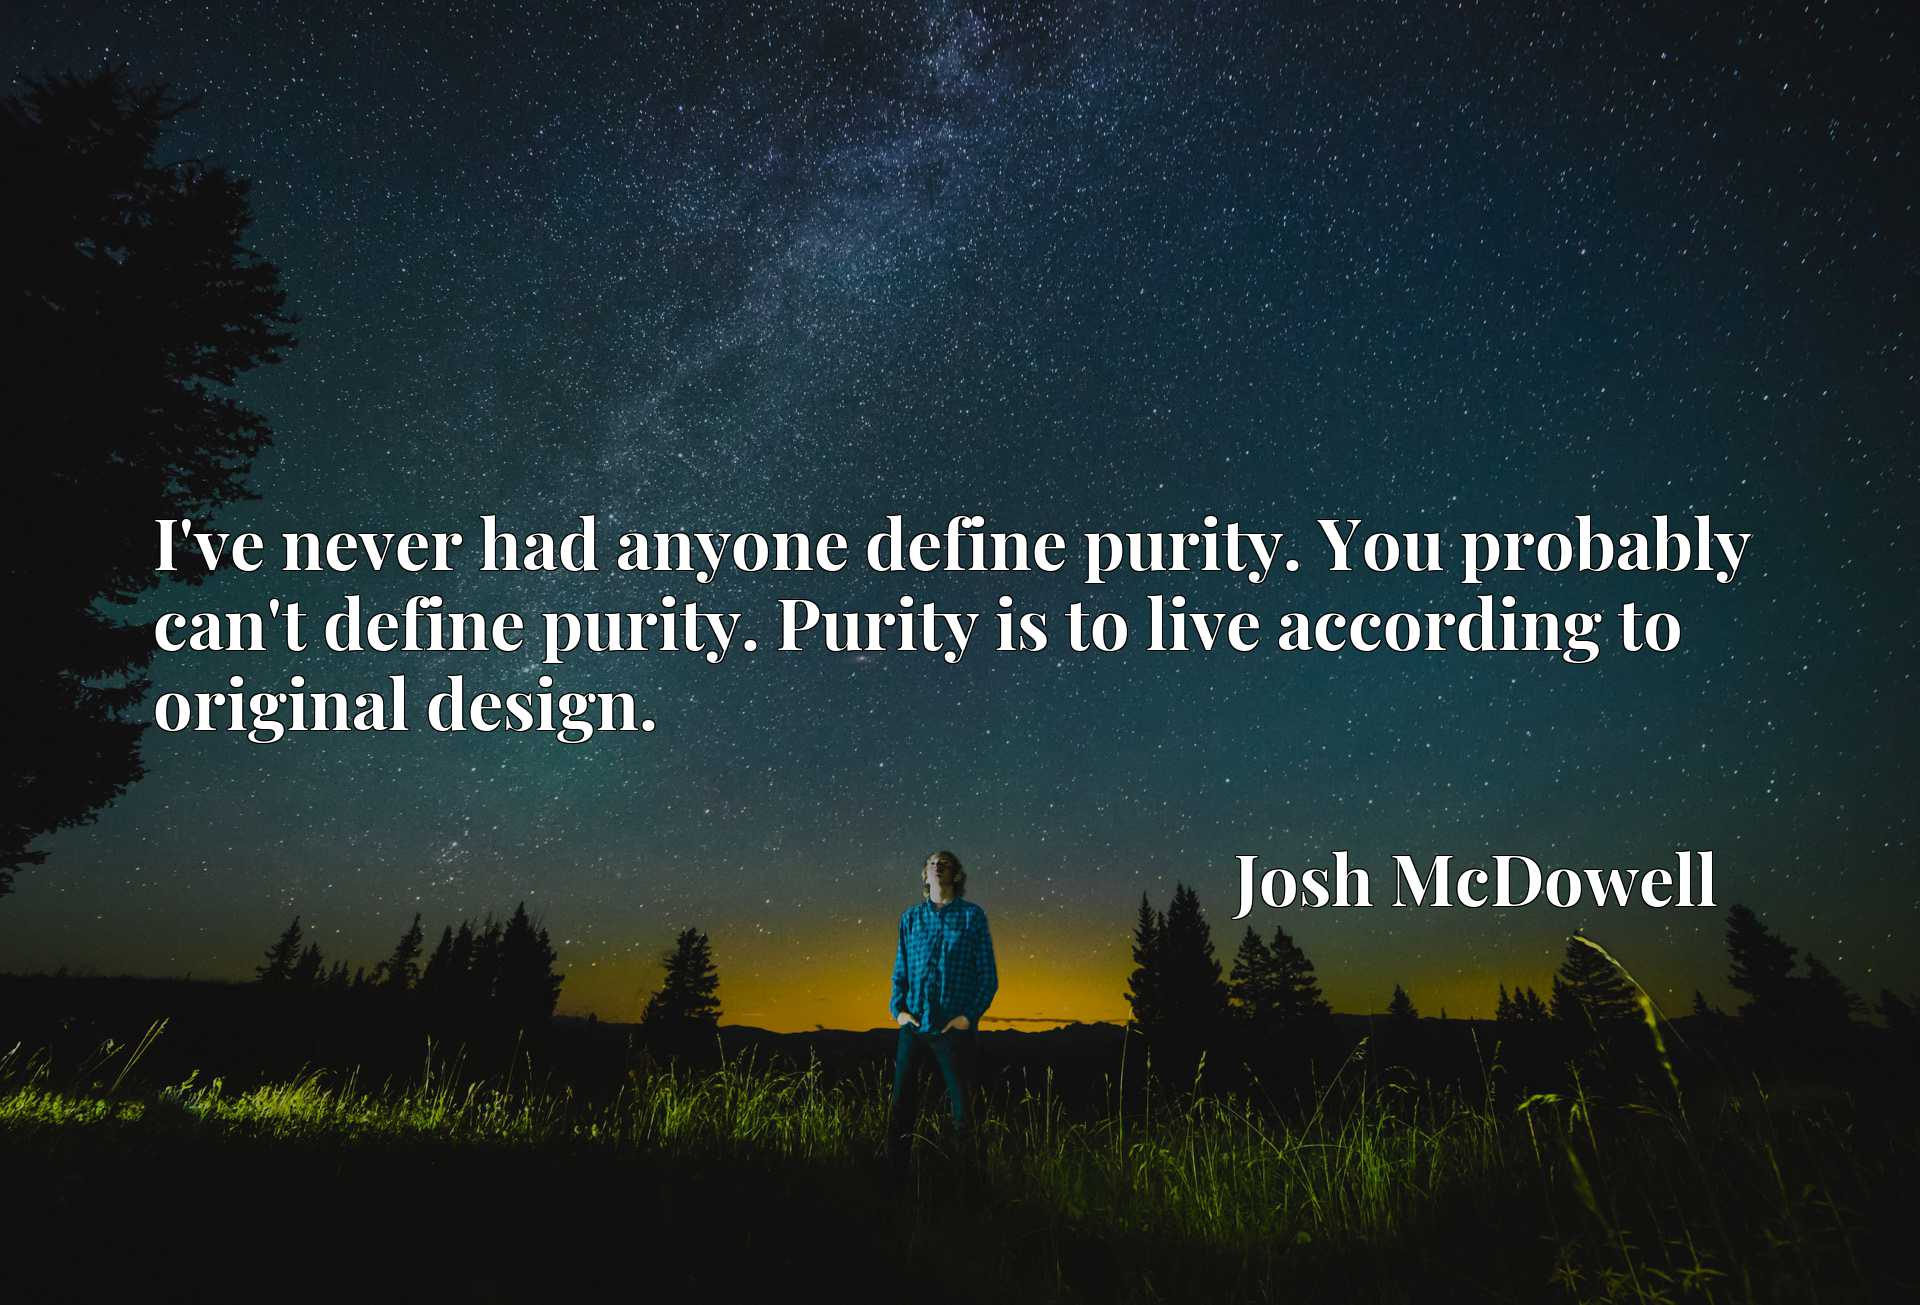 I've never had anyone define purity. You probably can't define purity. Purity is to live according to original design.